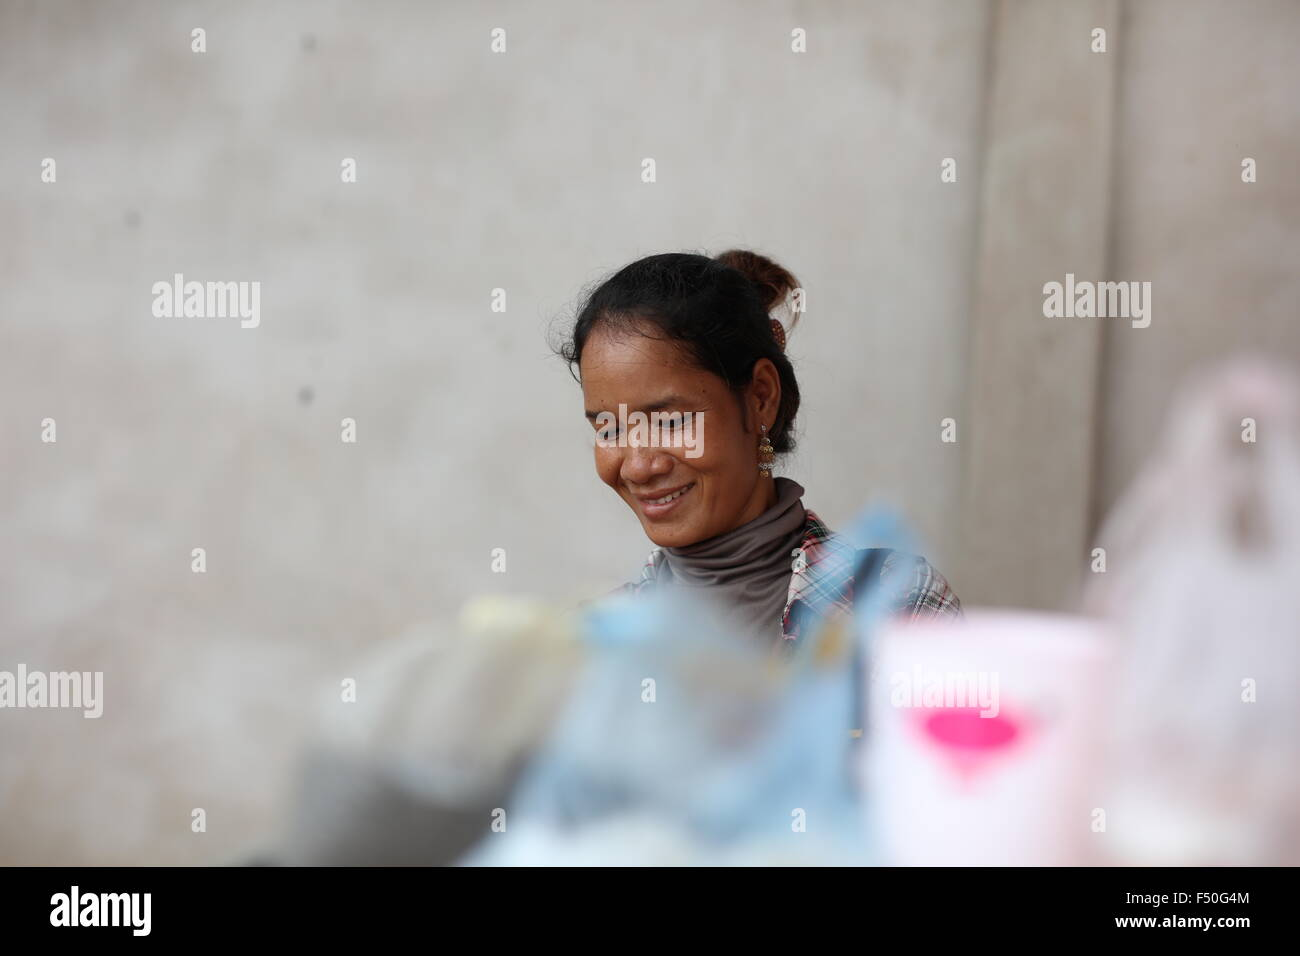 Portrait of Asian woman smiling Photo Stock